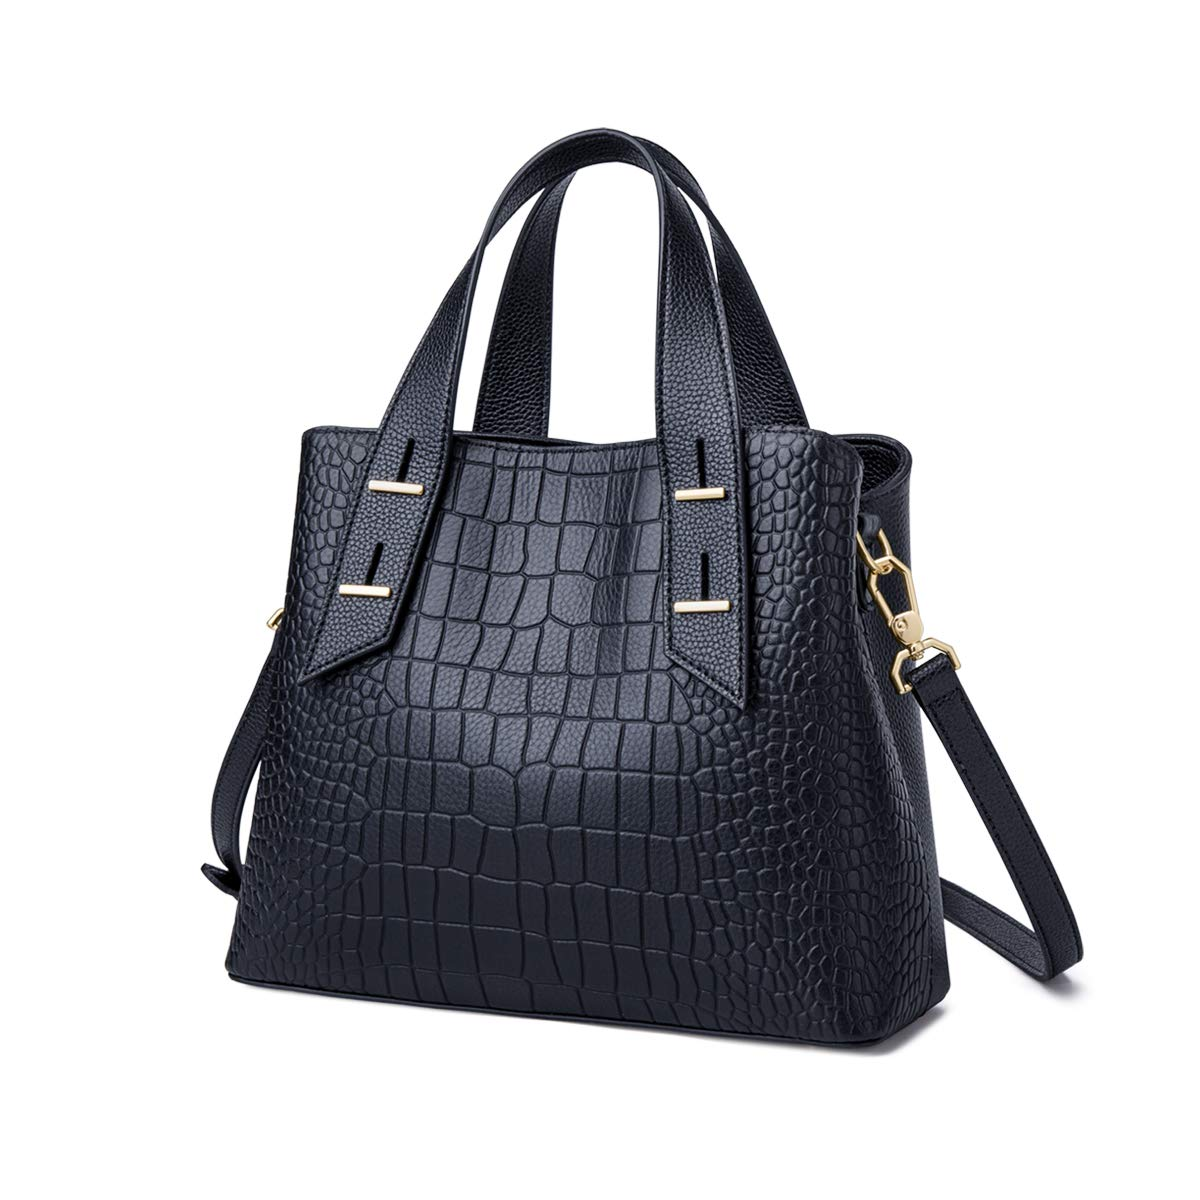 39d47fd165fe Amazon.com: ZOOLER GLOBAL Leather Purses and Handbags for Women ...